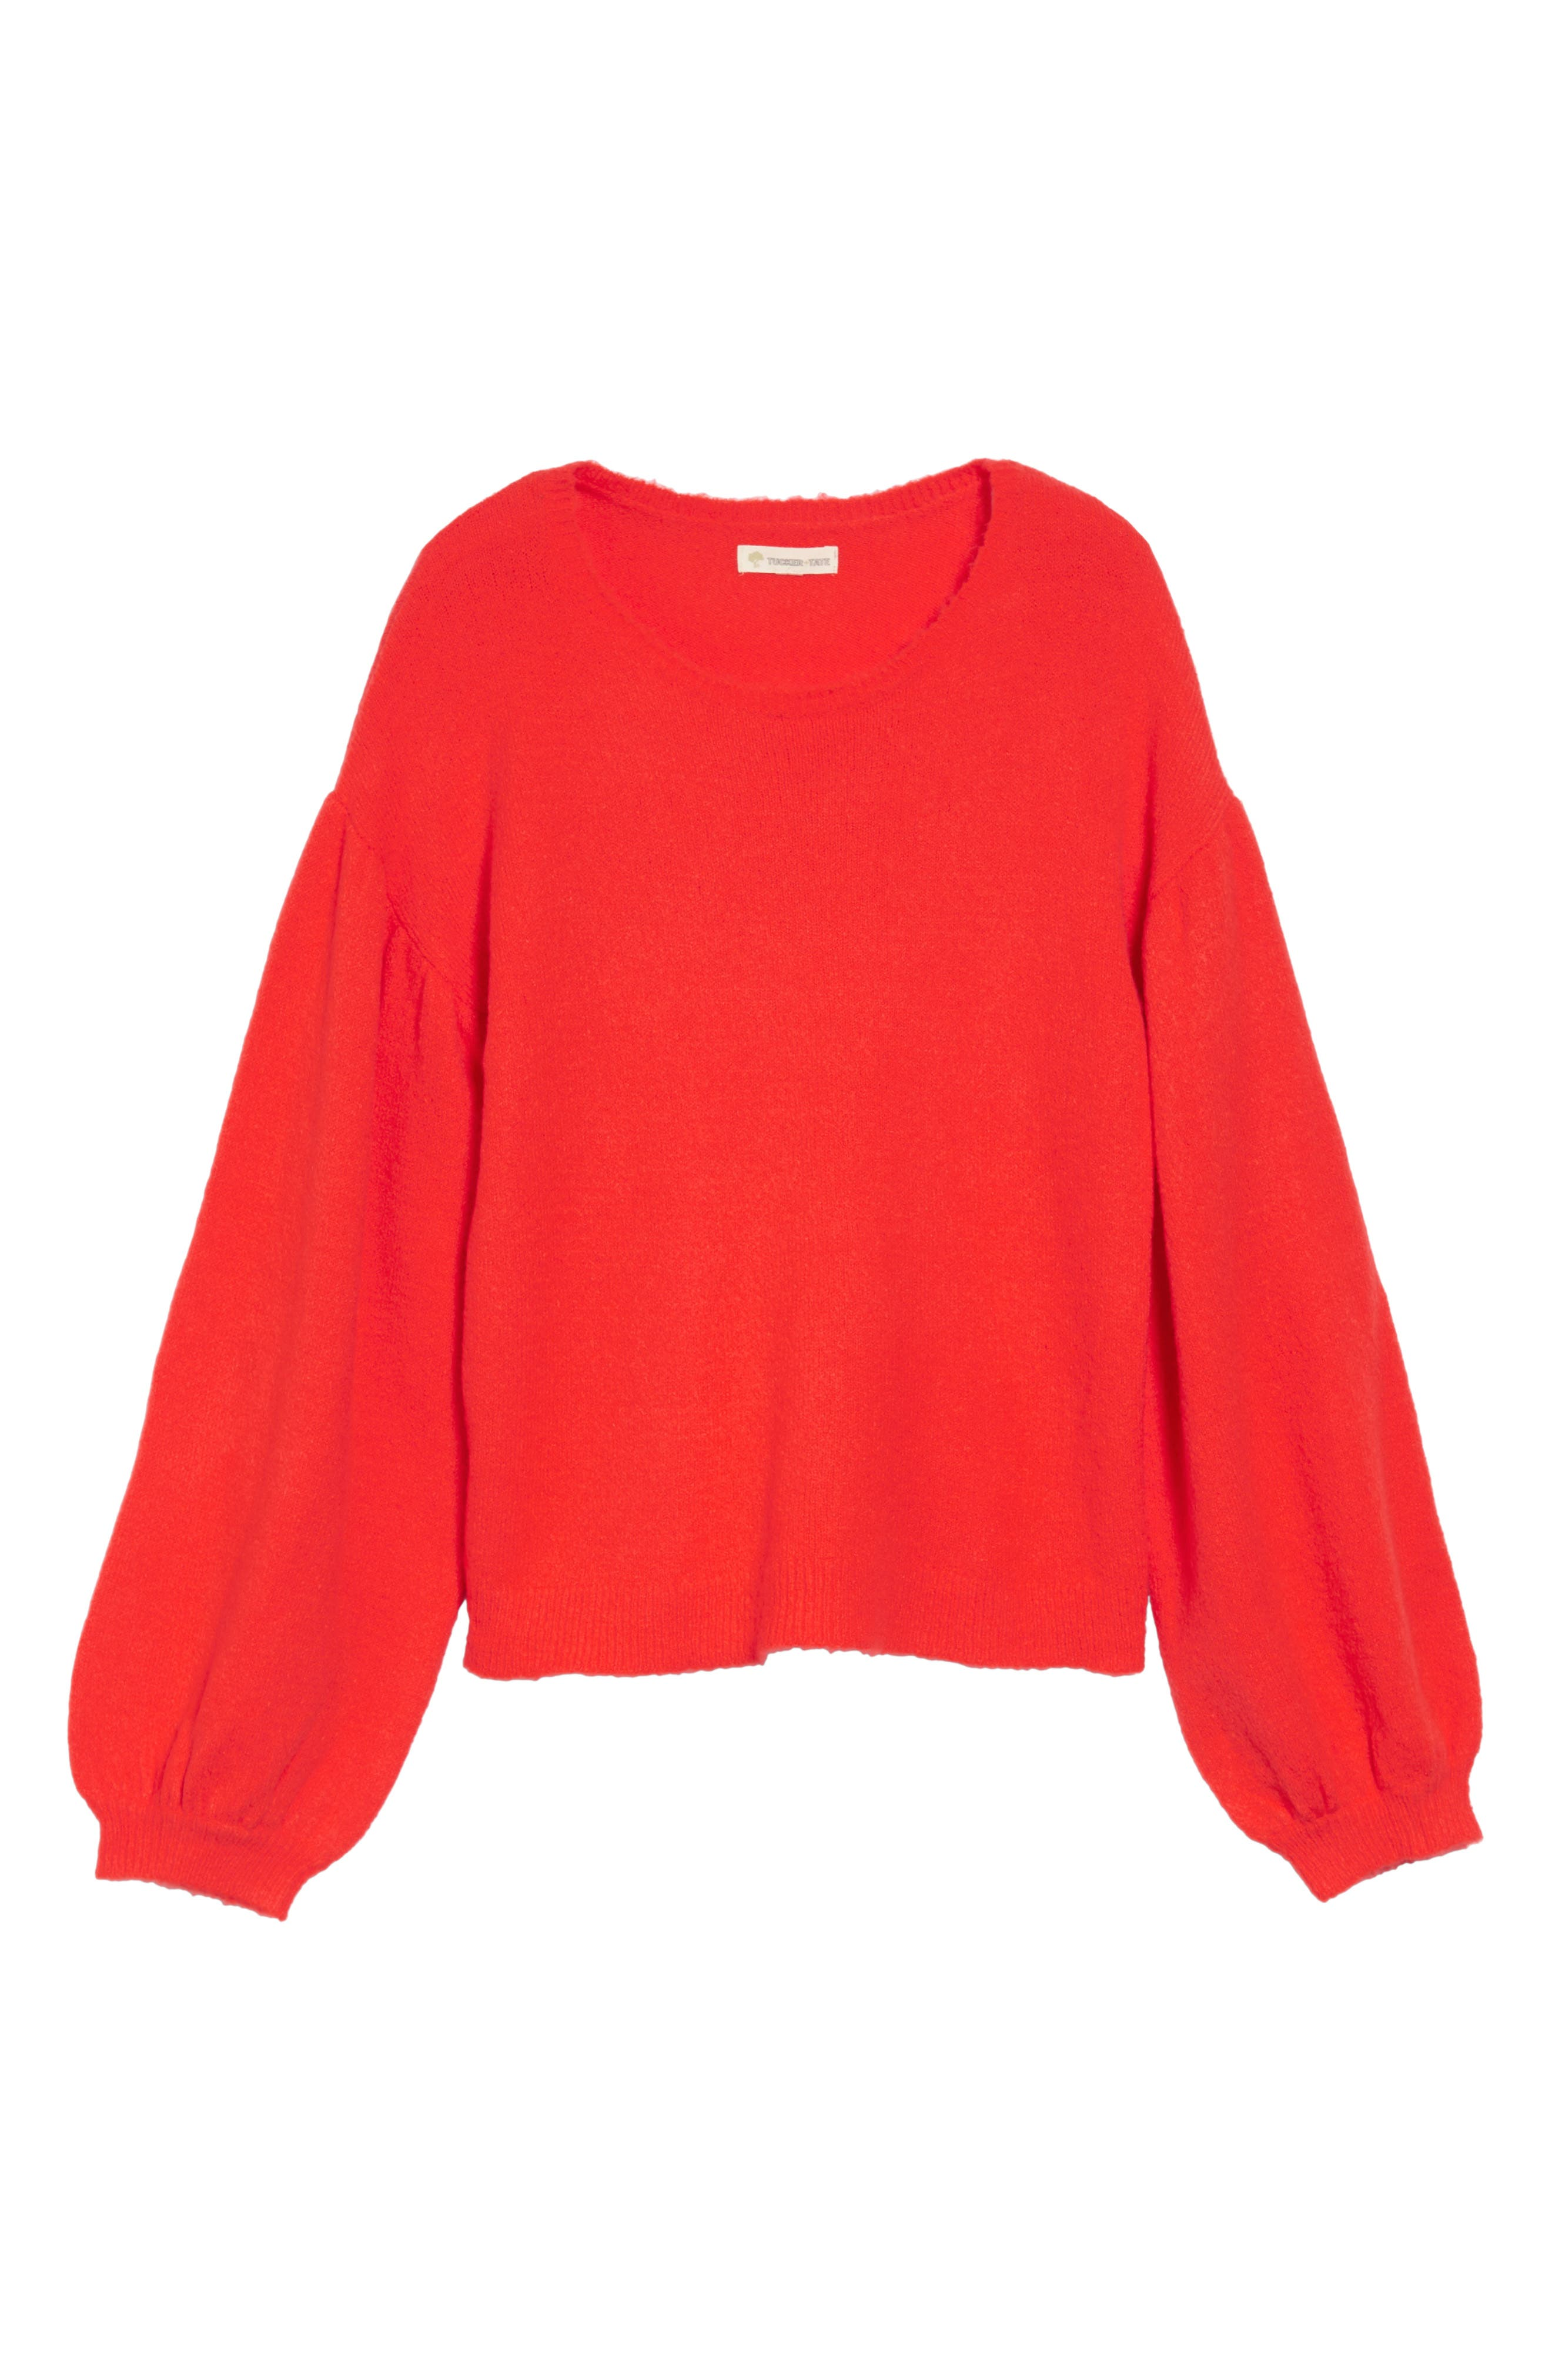 Bubble Sleeve Sweater,                             Main thumbnail 1, color,                             RED TOMATO